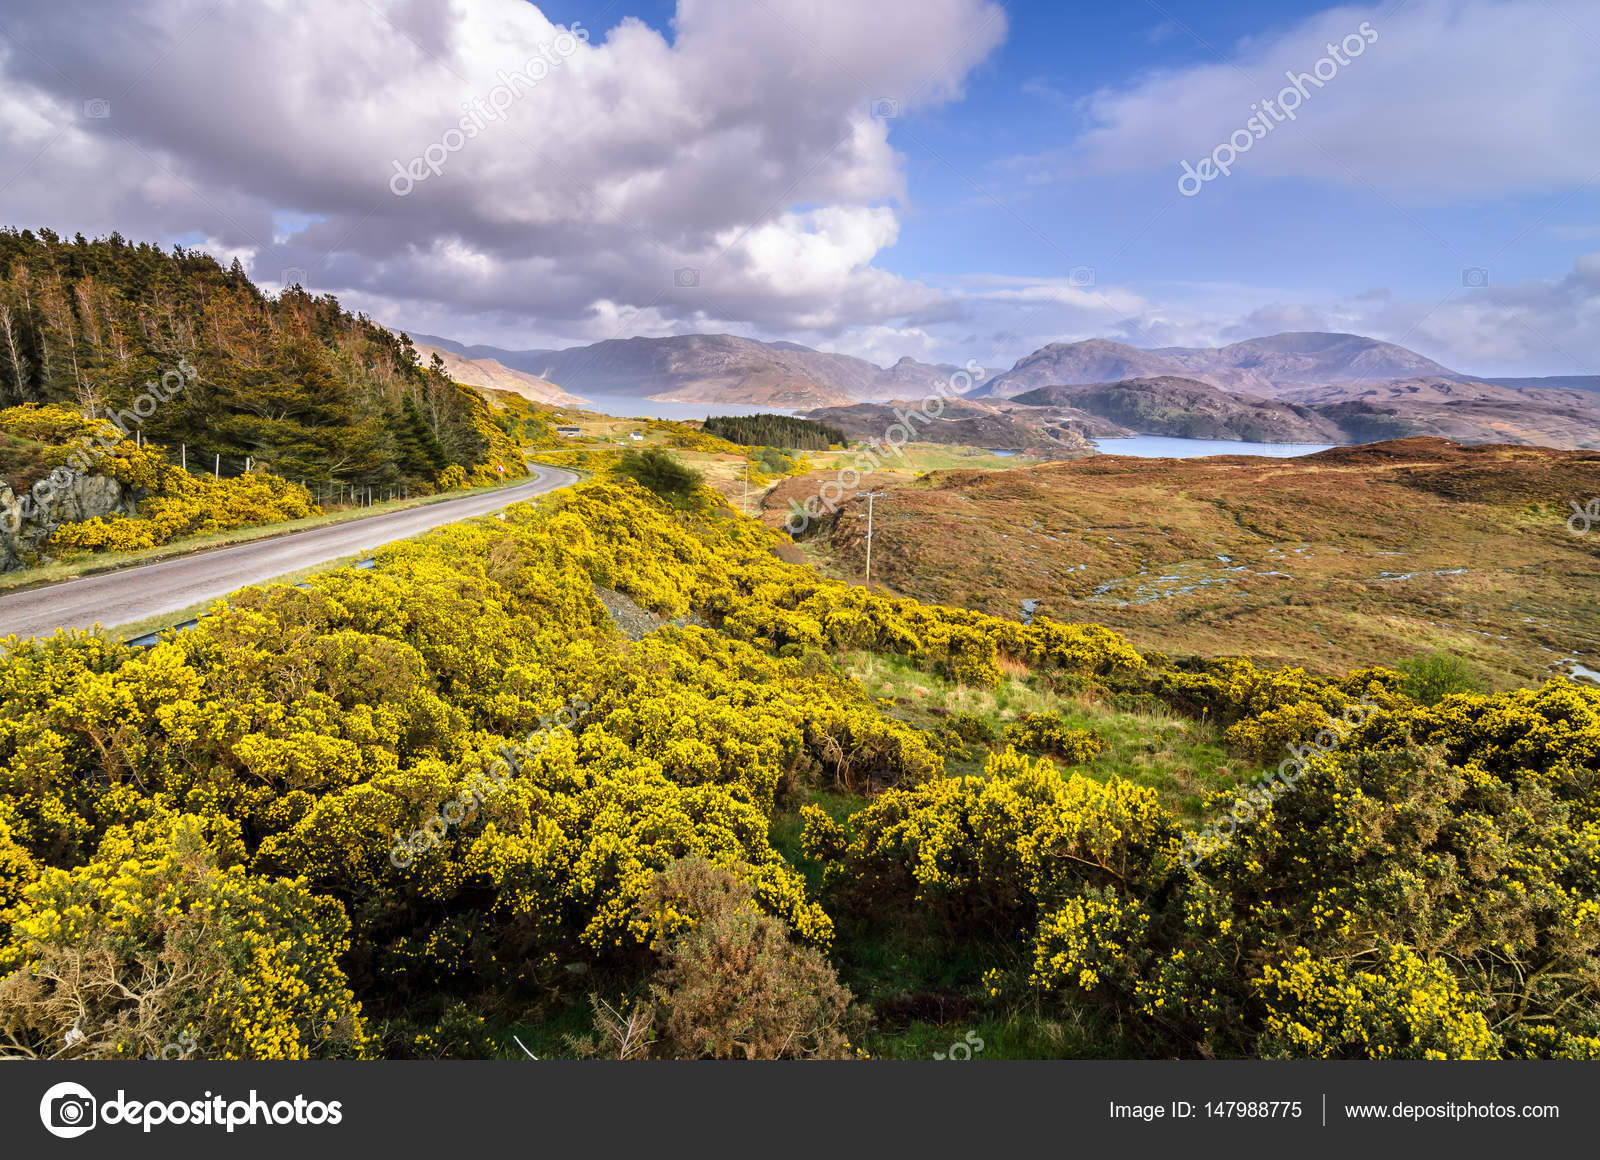 Fiori Gialli Scozia.Higlands Scottish Landscape Scotland Great Britain Stock Photo